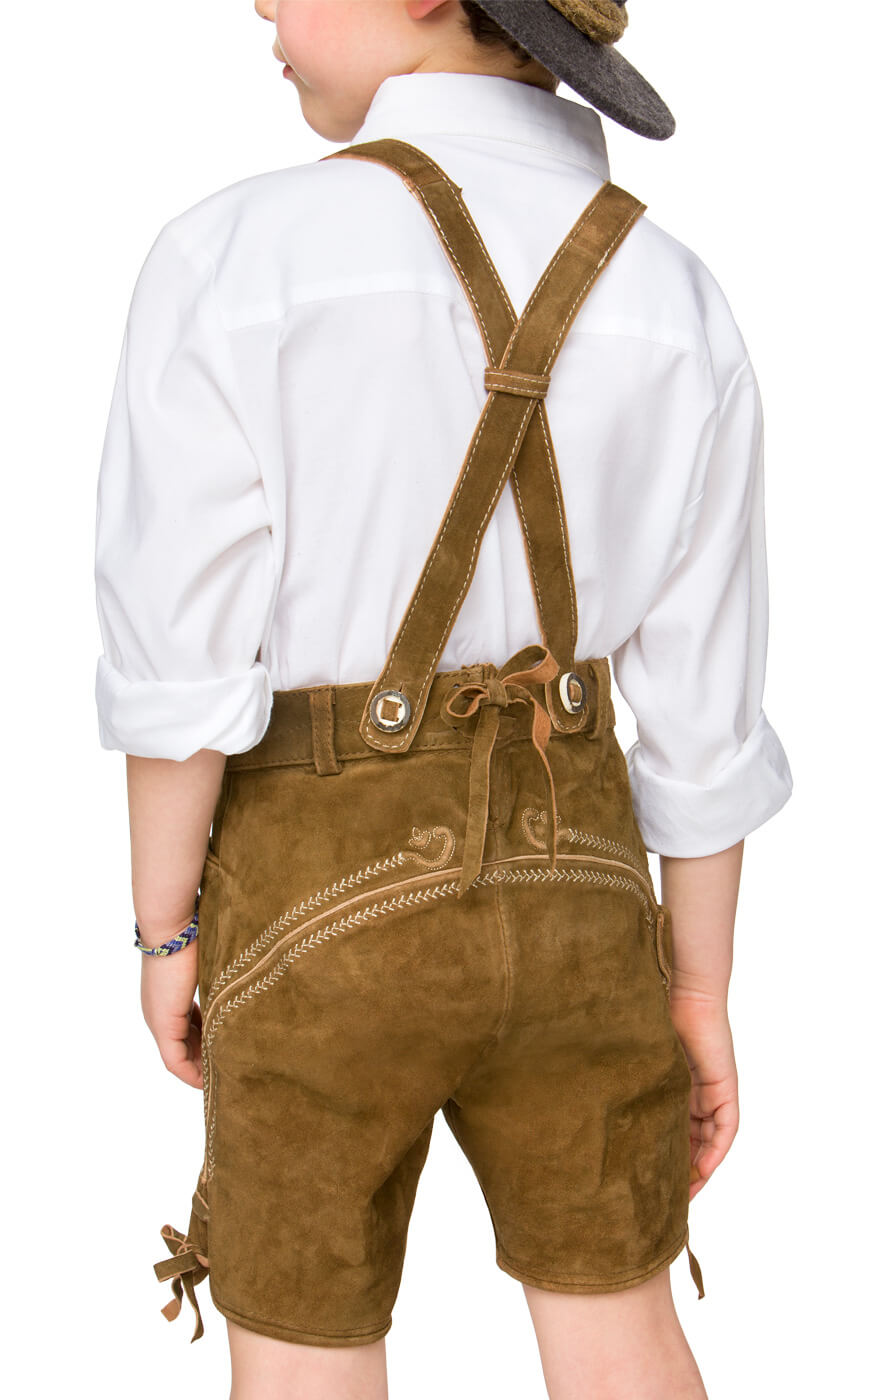 weitere Bilder von Chlidren leather trousers short P-200 lightbrown